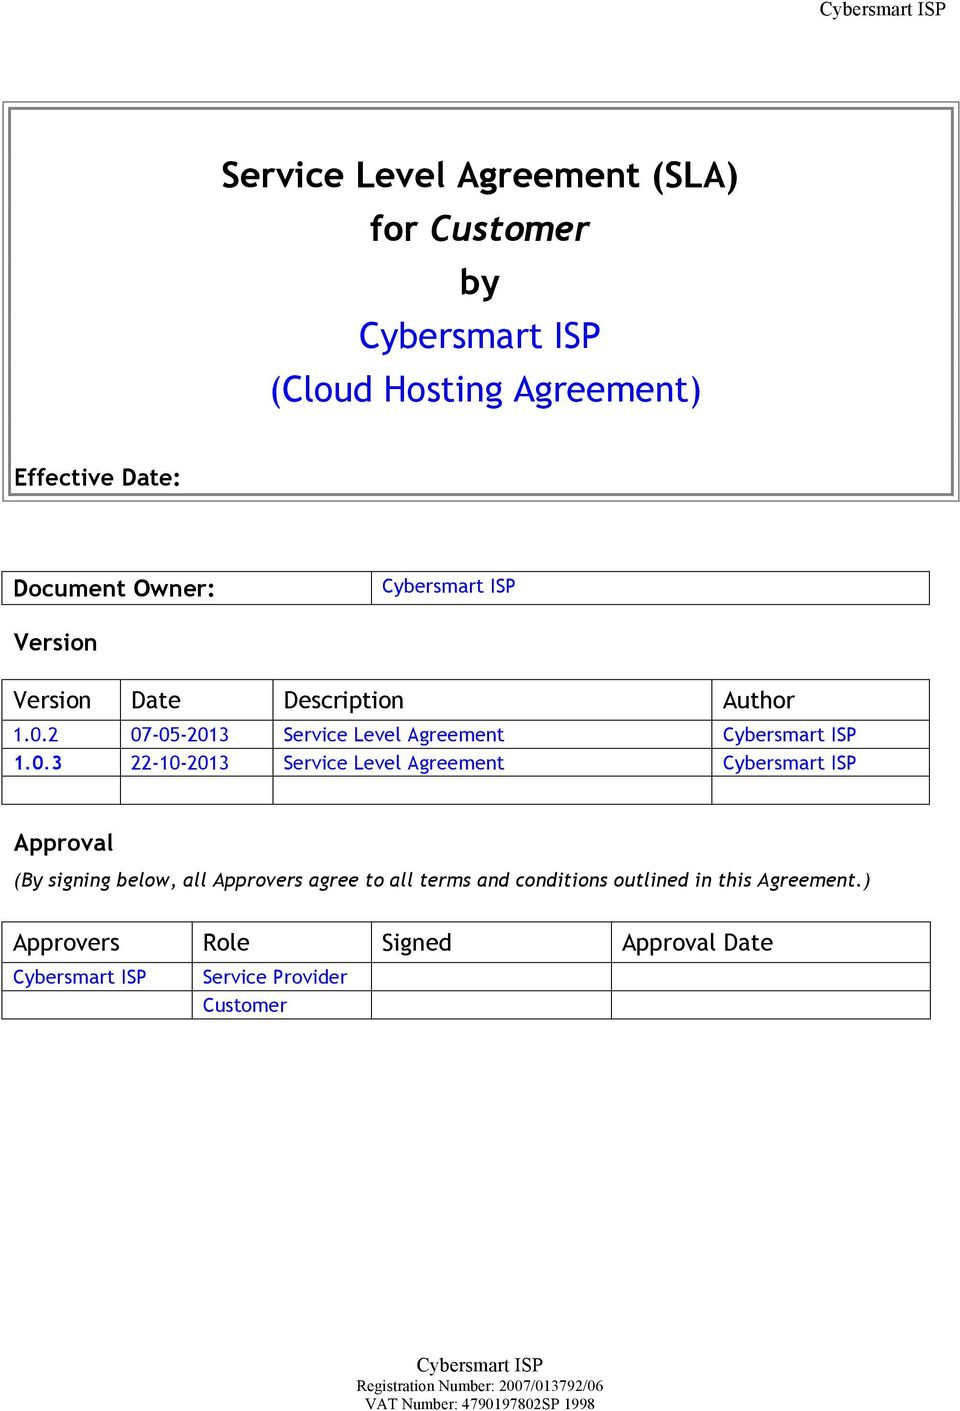 Service Level Agreement Sla For Customer By Cybersmart Isp